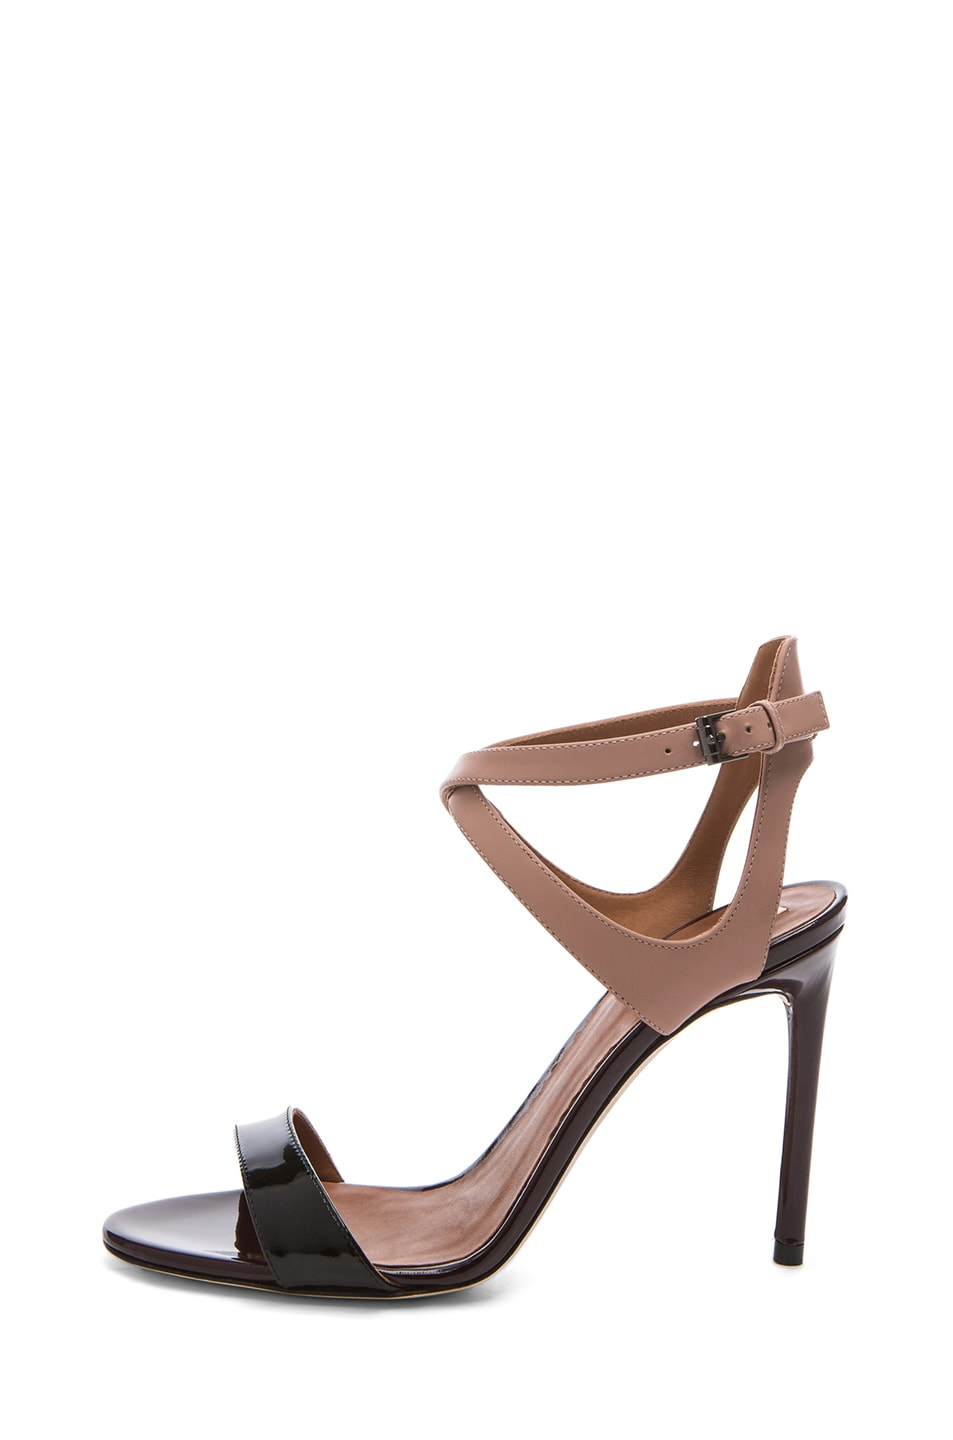 Image 1 of Reed Krakoff Glossy Leather Ankle Harness Sandals in Black & Nude